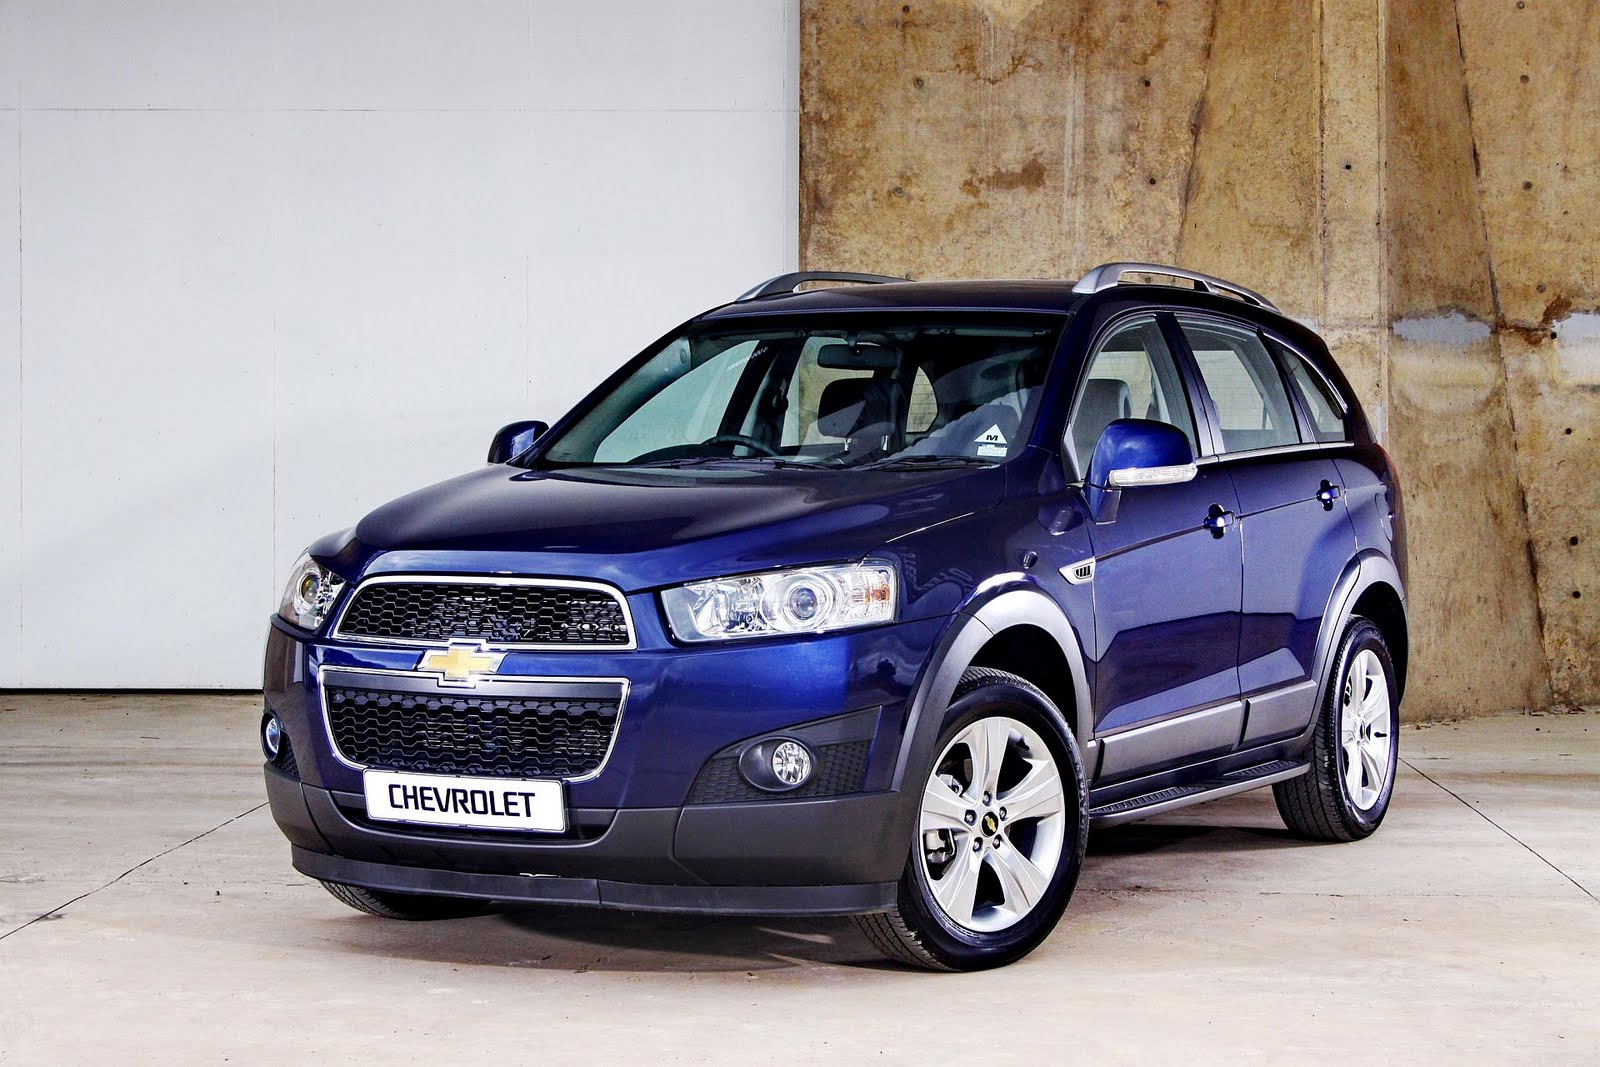 In4ride Bolder 2011 Chevrolet Captiva Launched